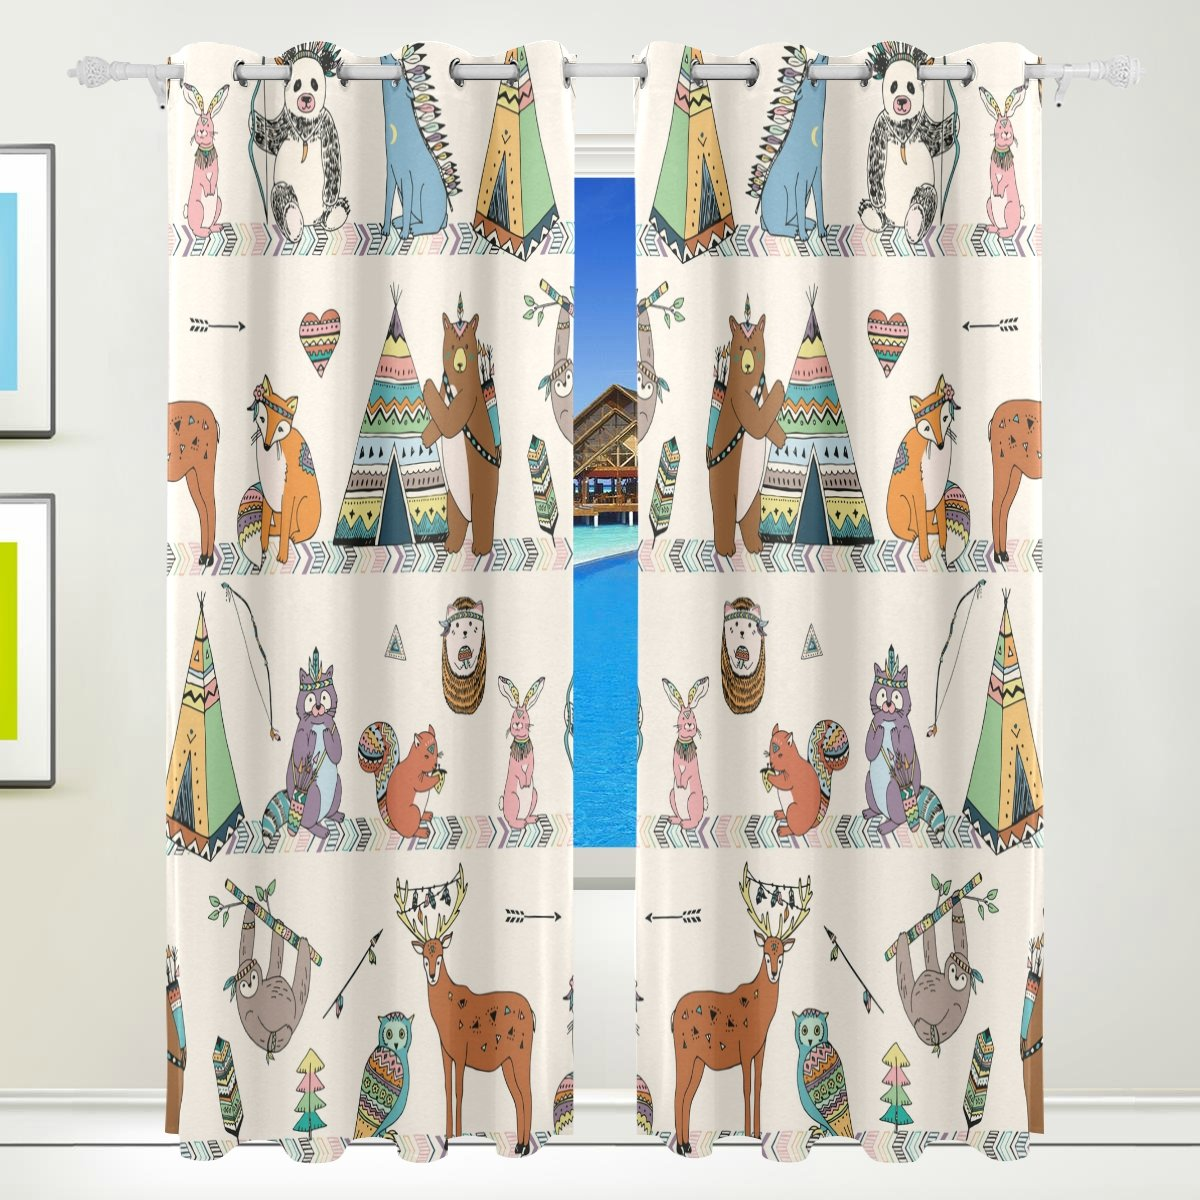 Vantaso Window Curtains 84 Inch Long Tribal Animals Woodland Forest Bear Owls for Kids Girls Boys Bedroom Living Room Polyester 2 Pannels